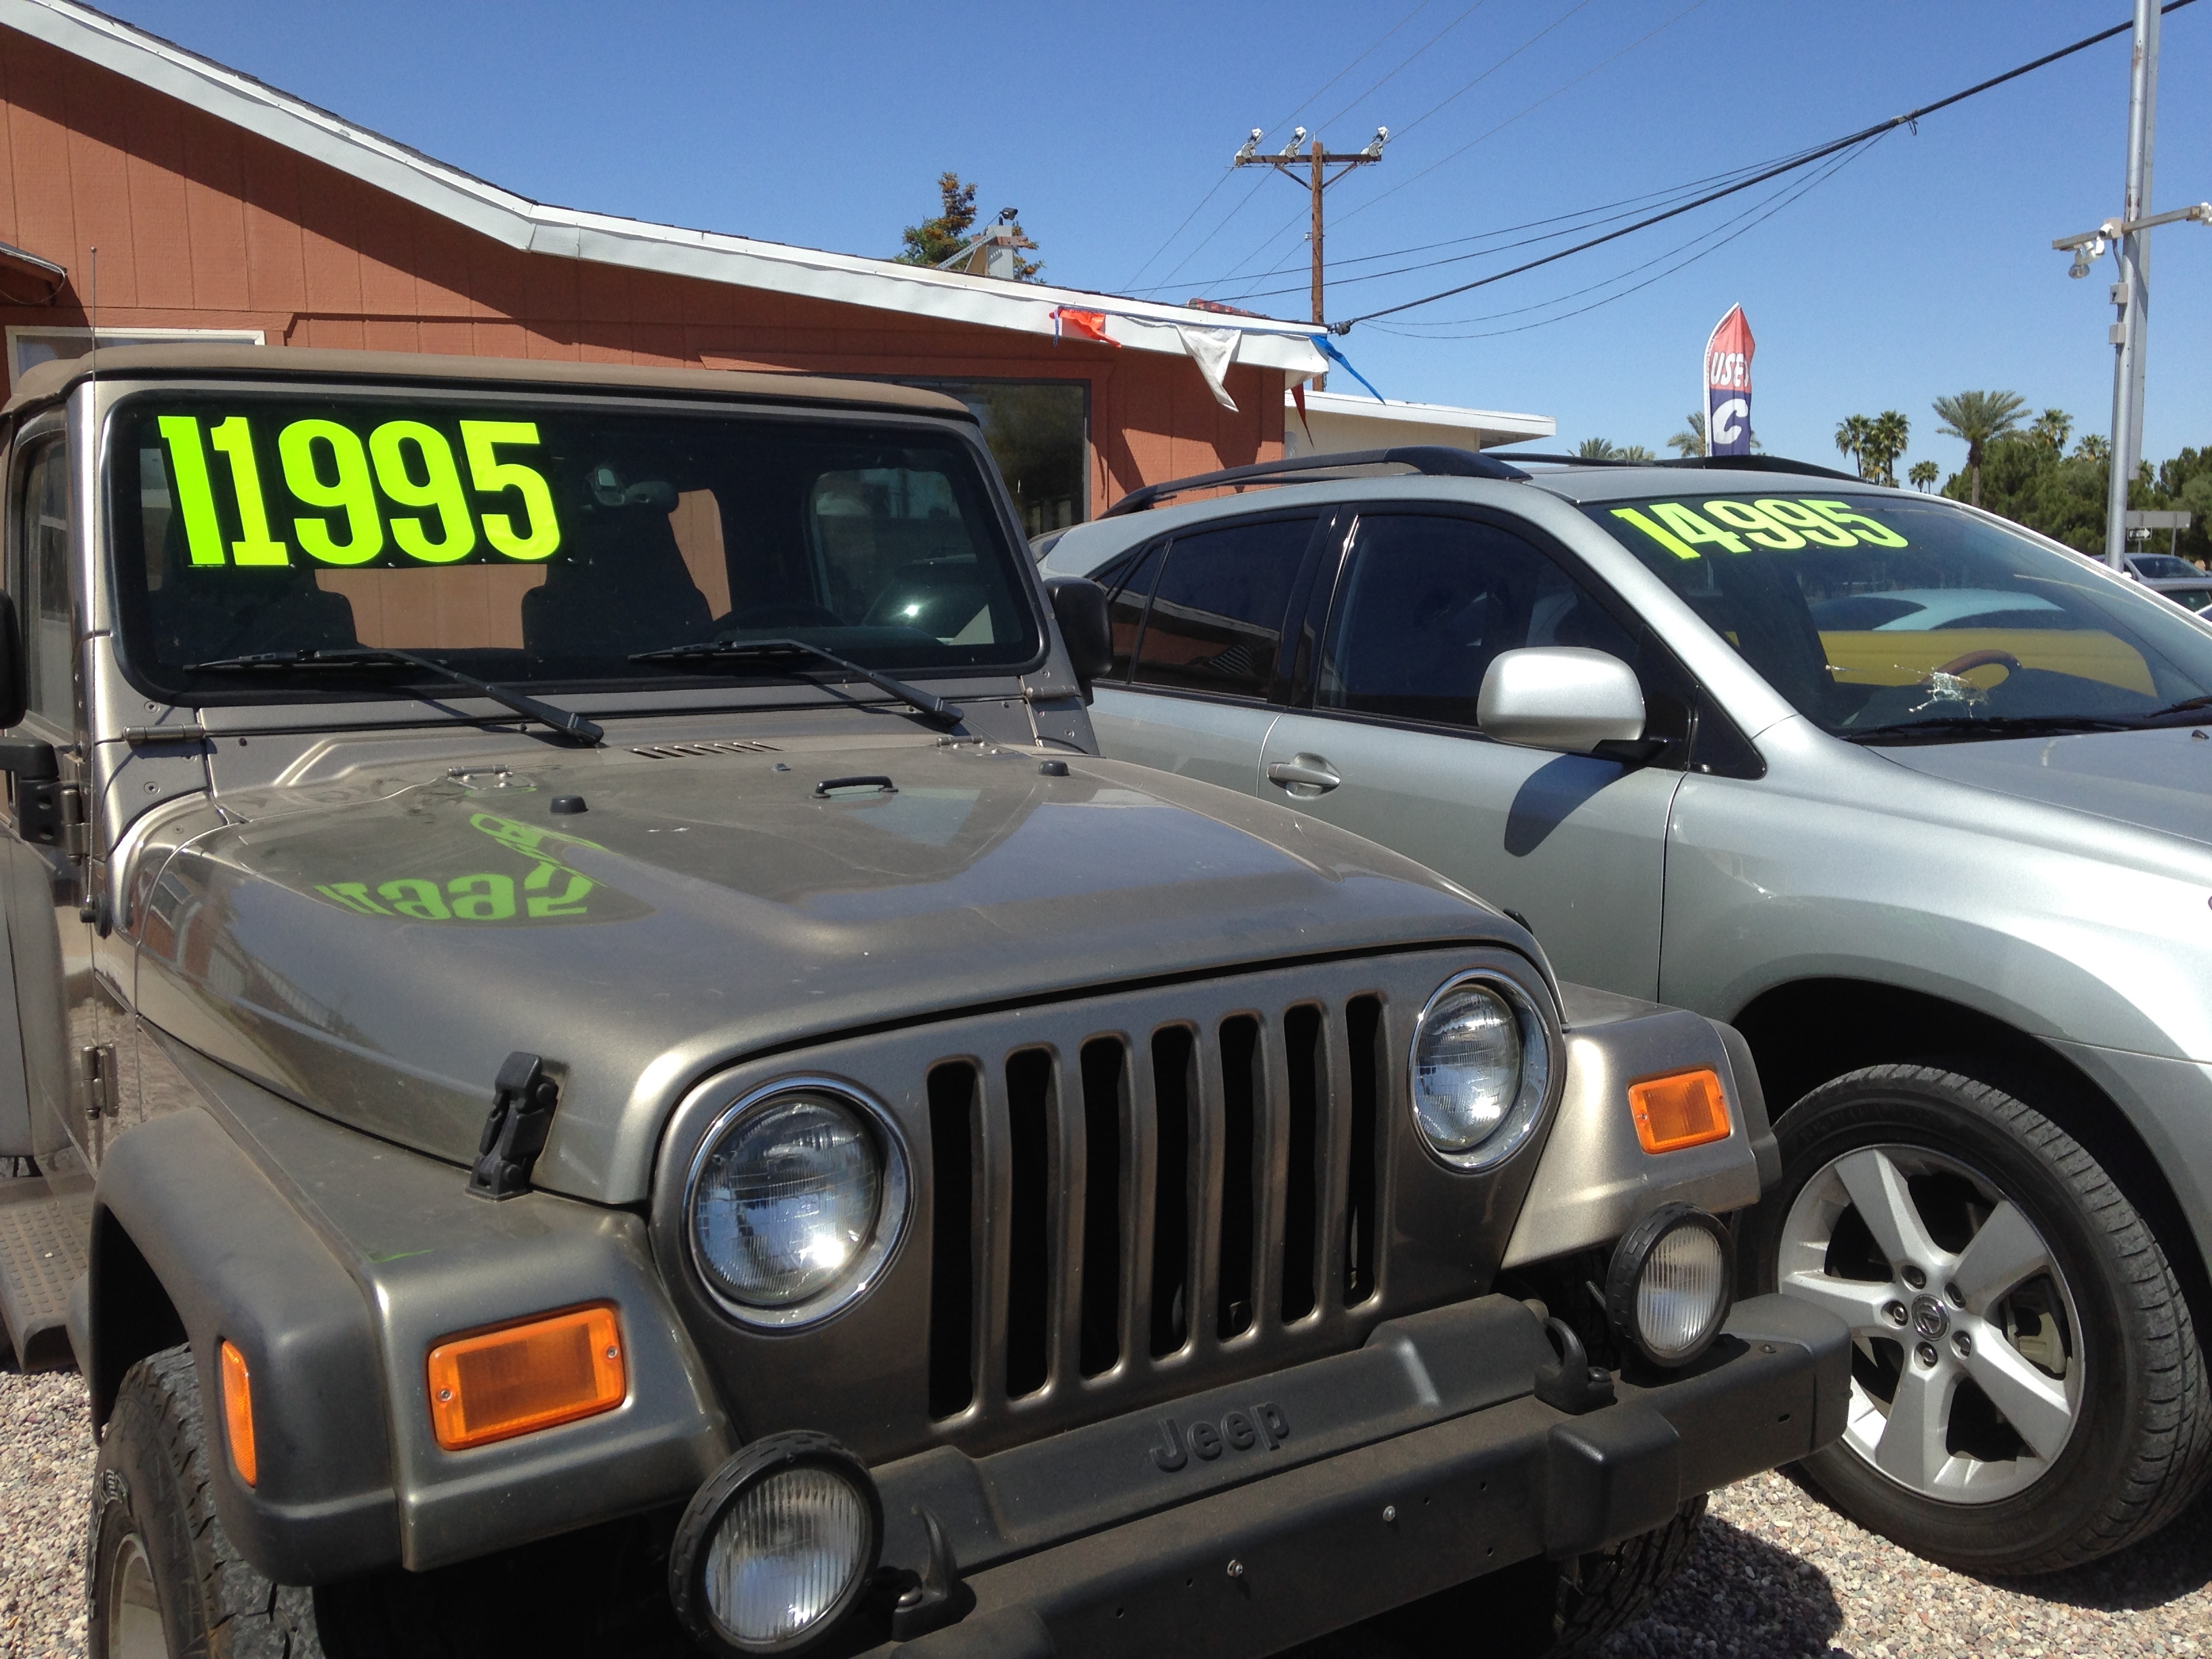 Top 10 Craigslist Dos and Don'ts for Selling Jeeps - Truck ...